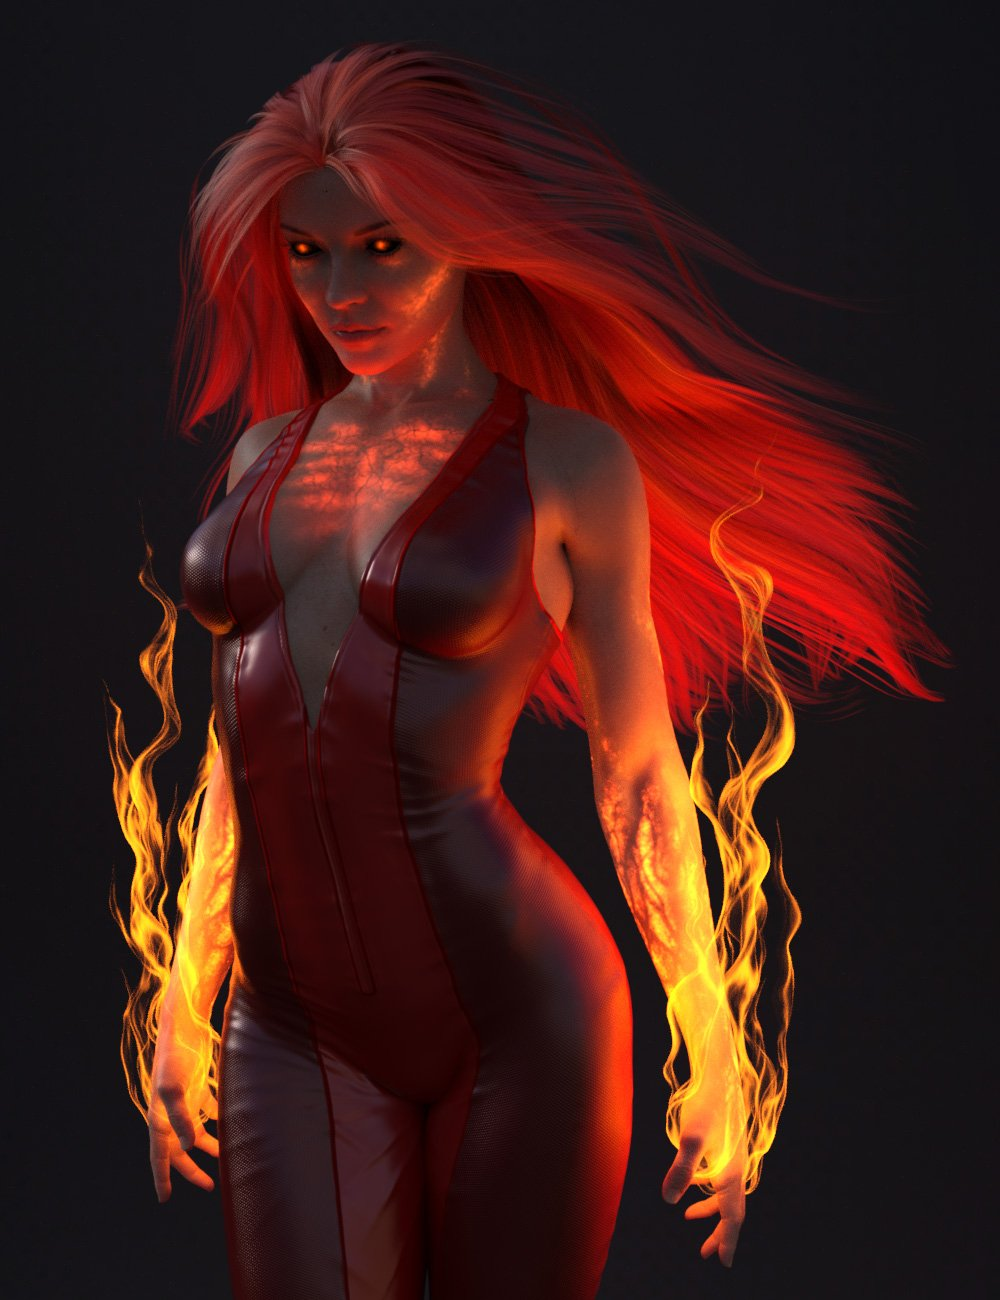 Superhero Body FX for Genesis 8 Females by: smay, 3D Models by Daz 3D